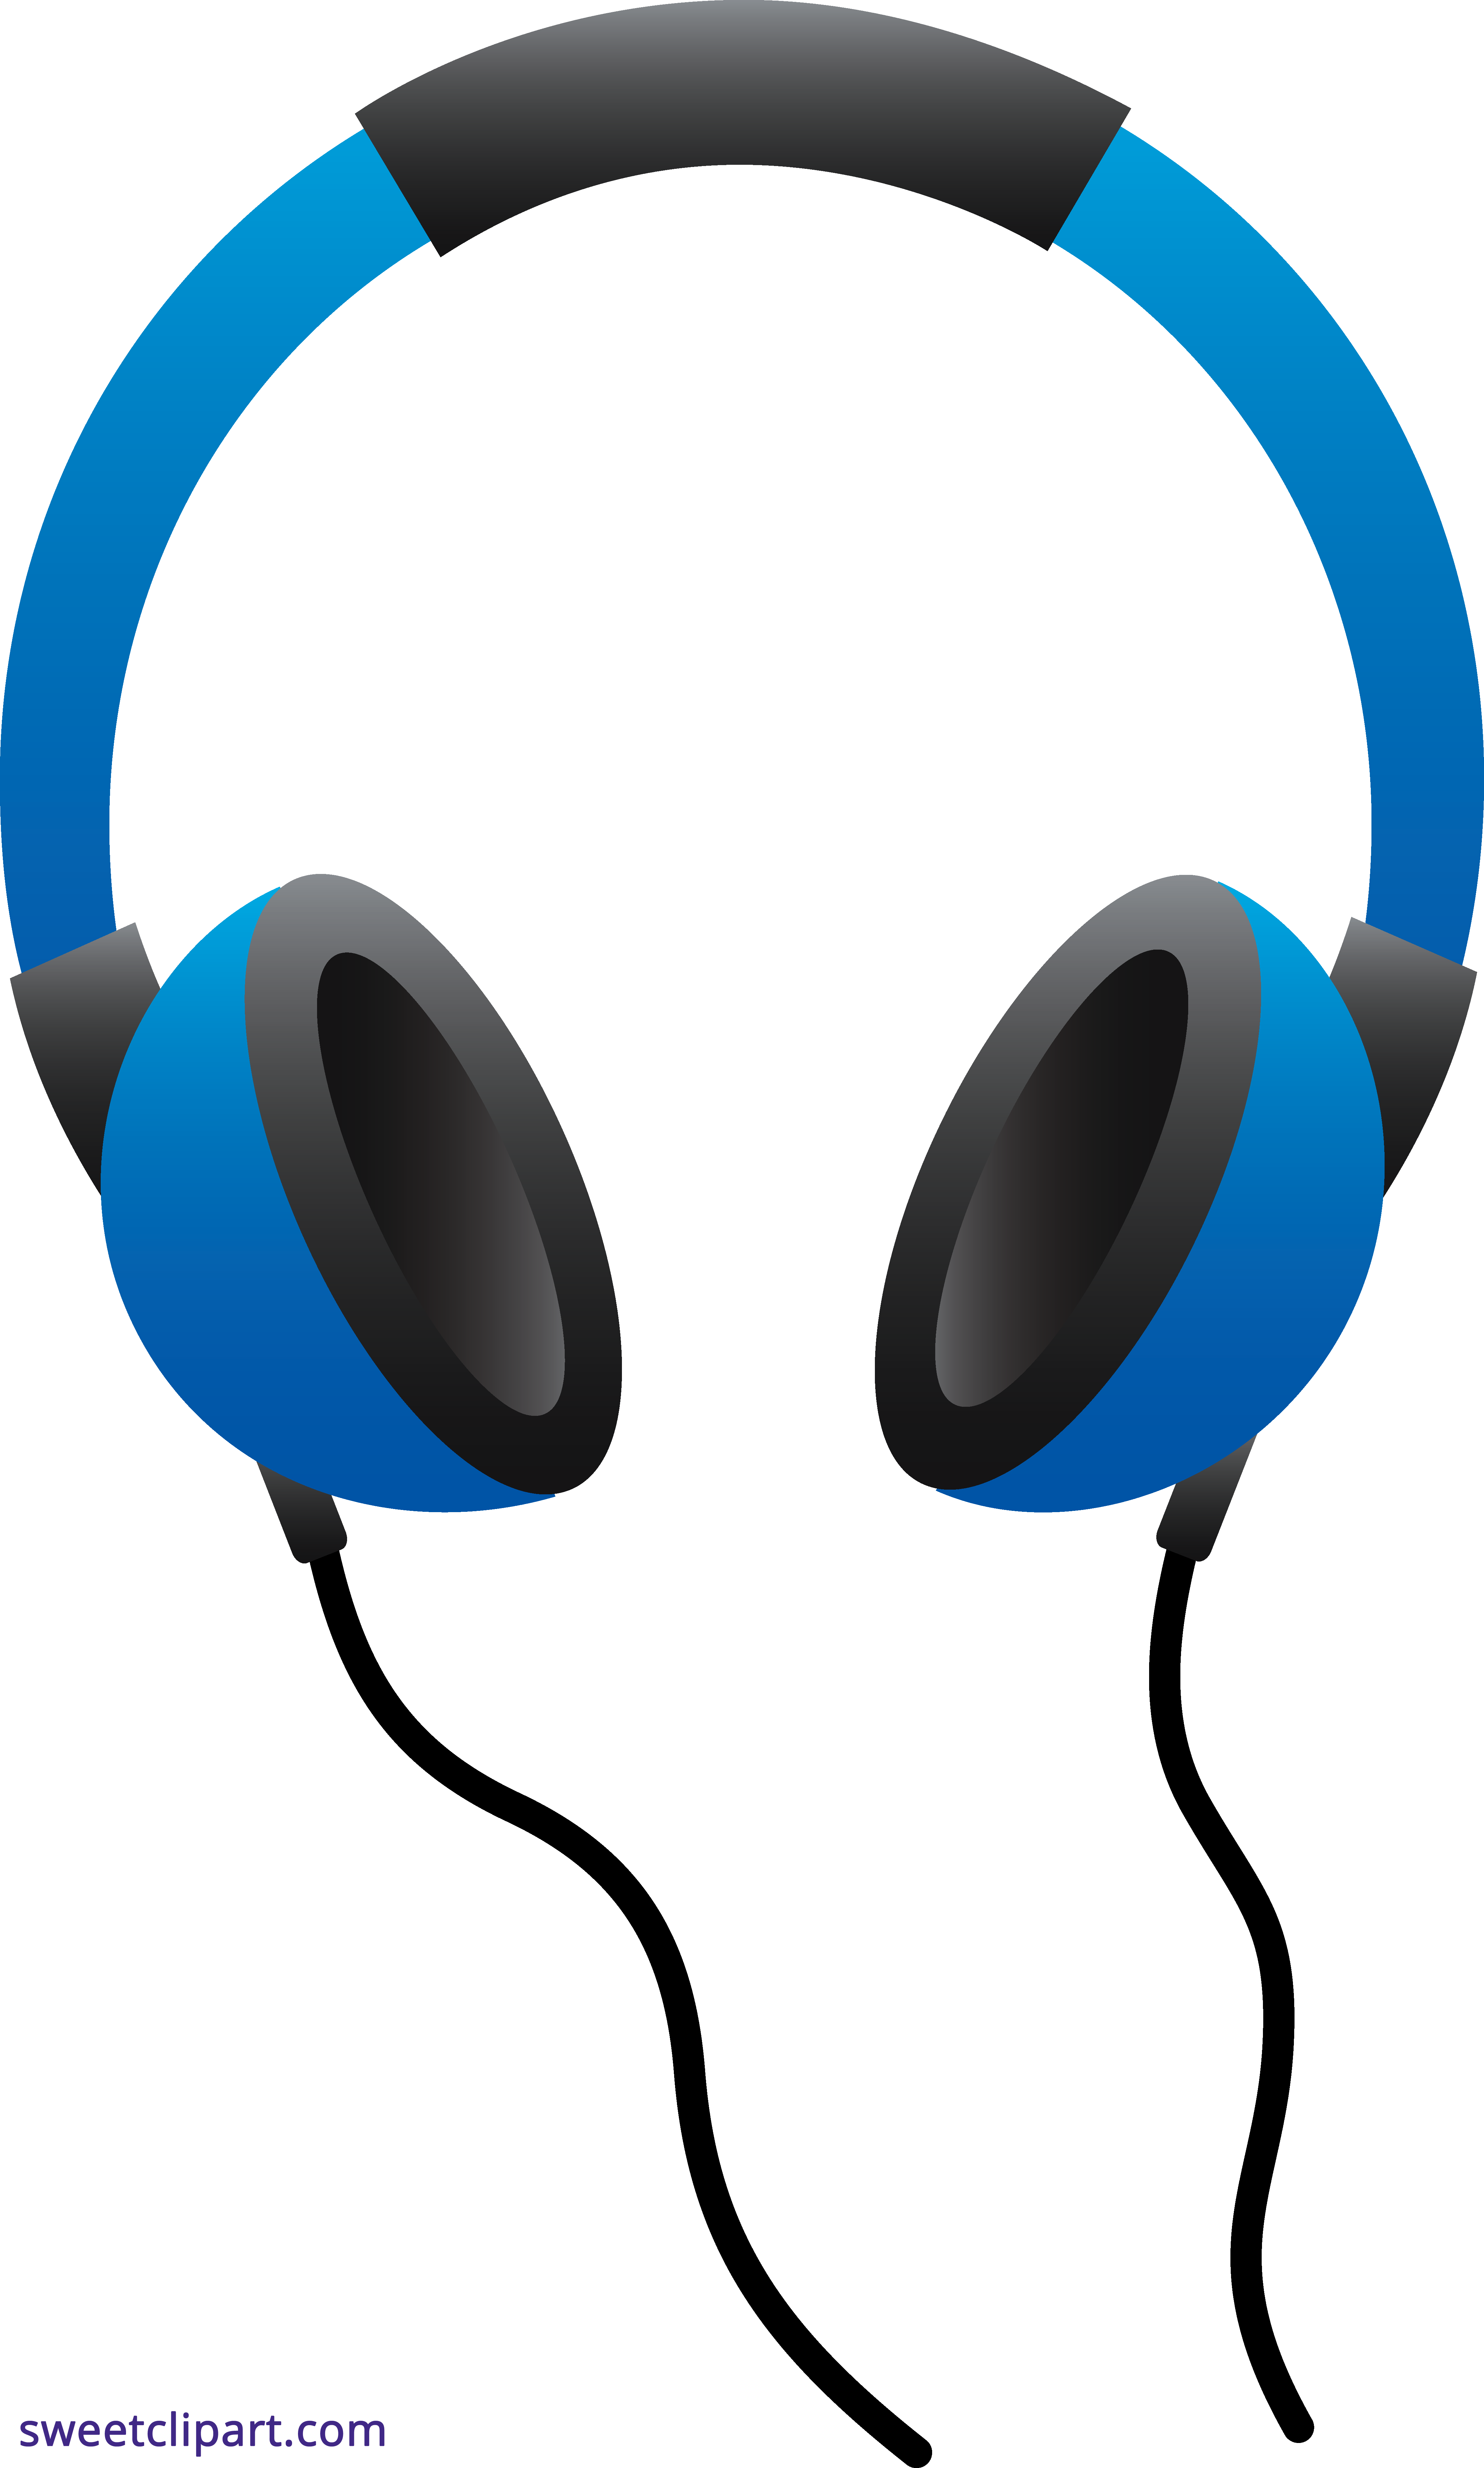 png library stock Headphones clipart. Blue sweet clip art.